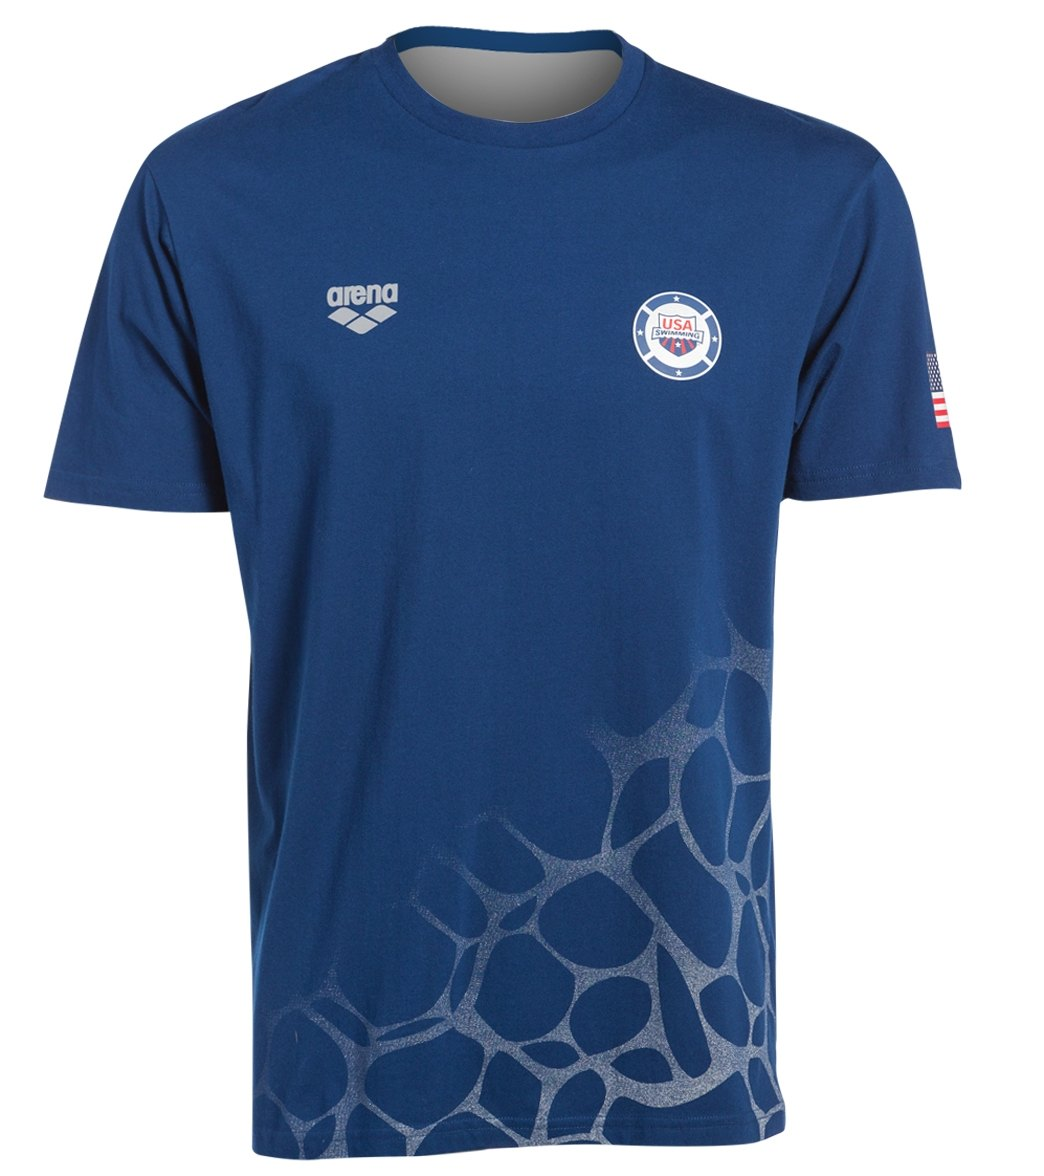 d7ebb410 Arena USA Swimming T-Shirt at SwimOutlet.com